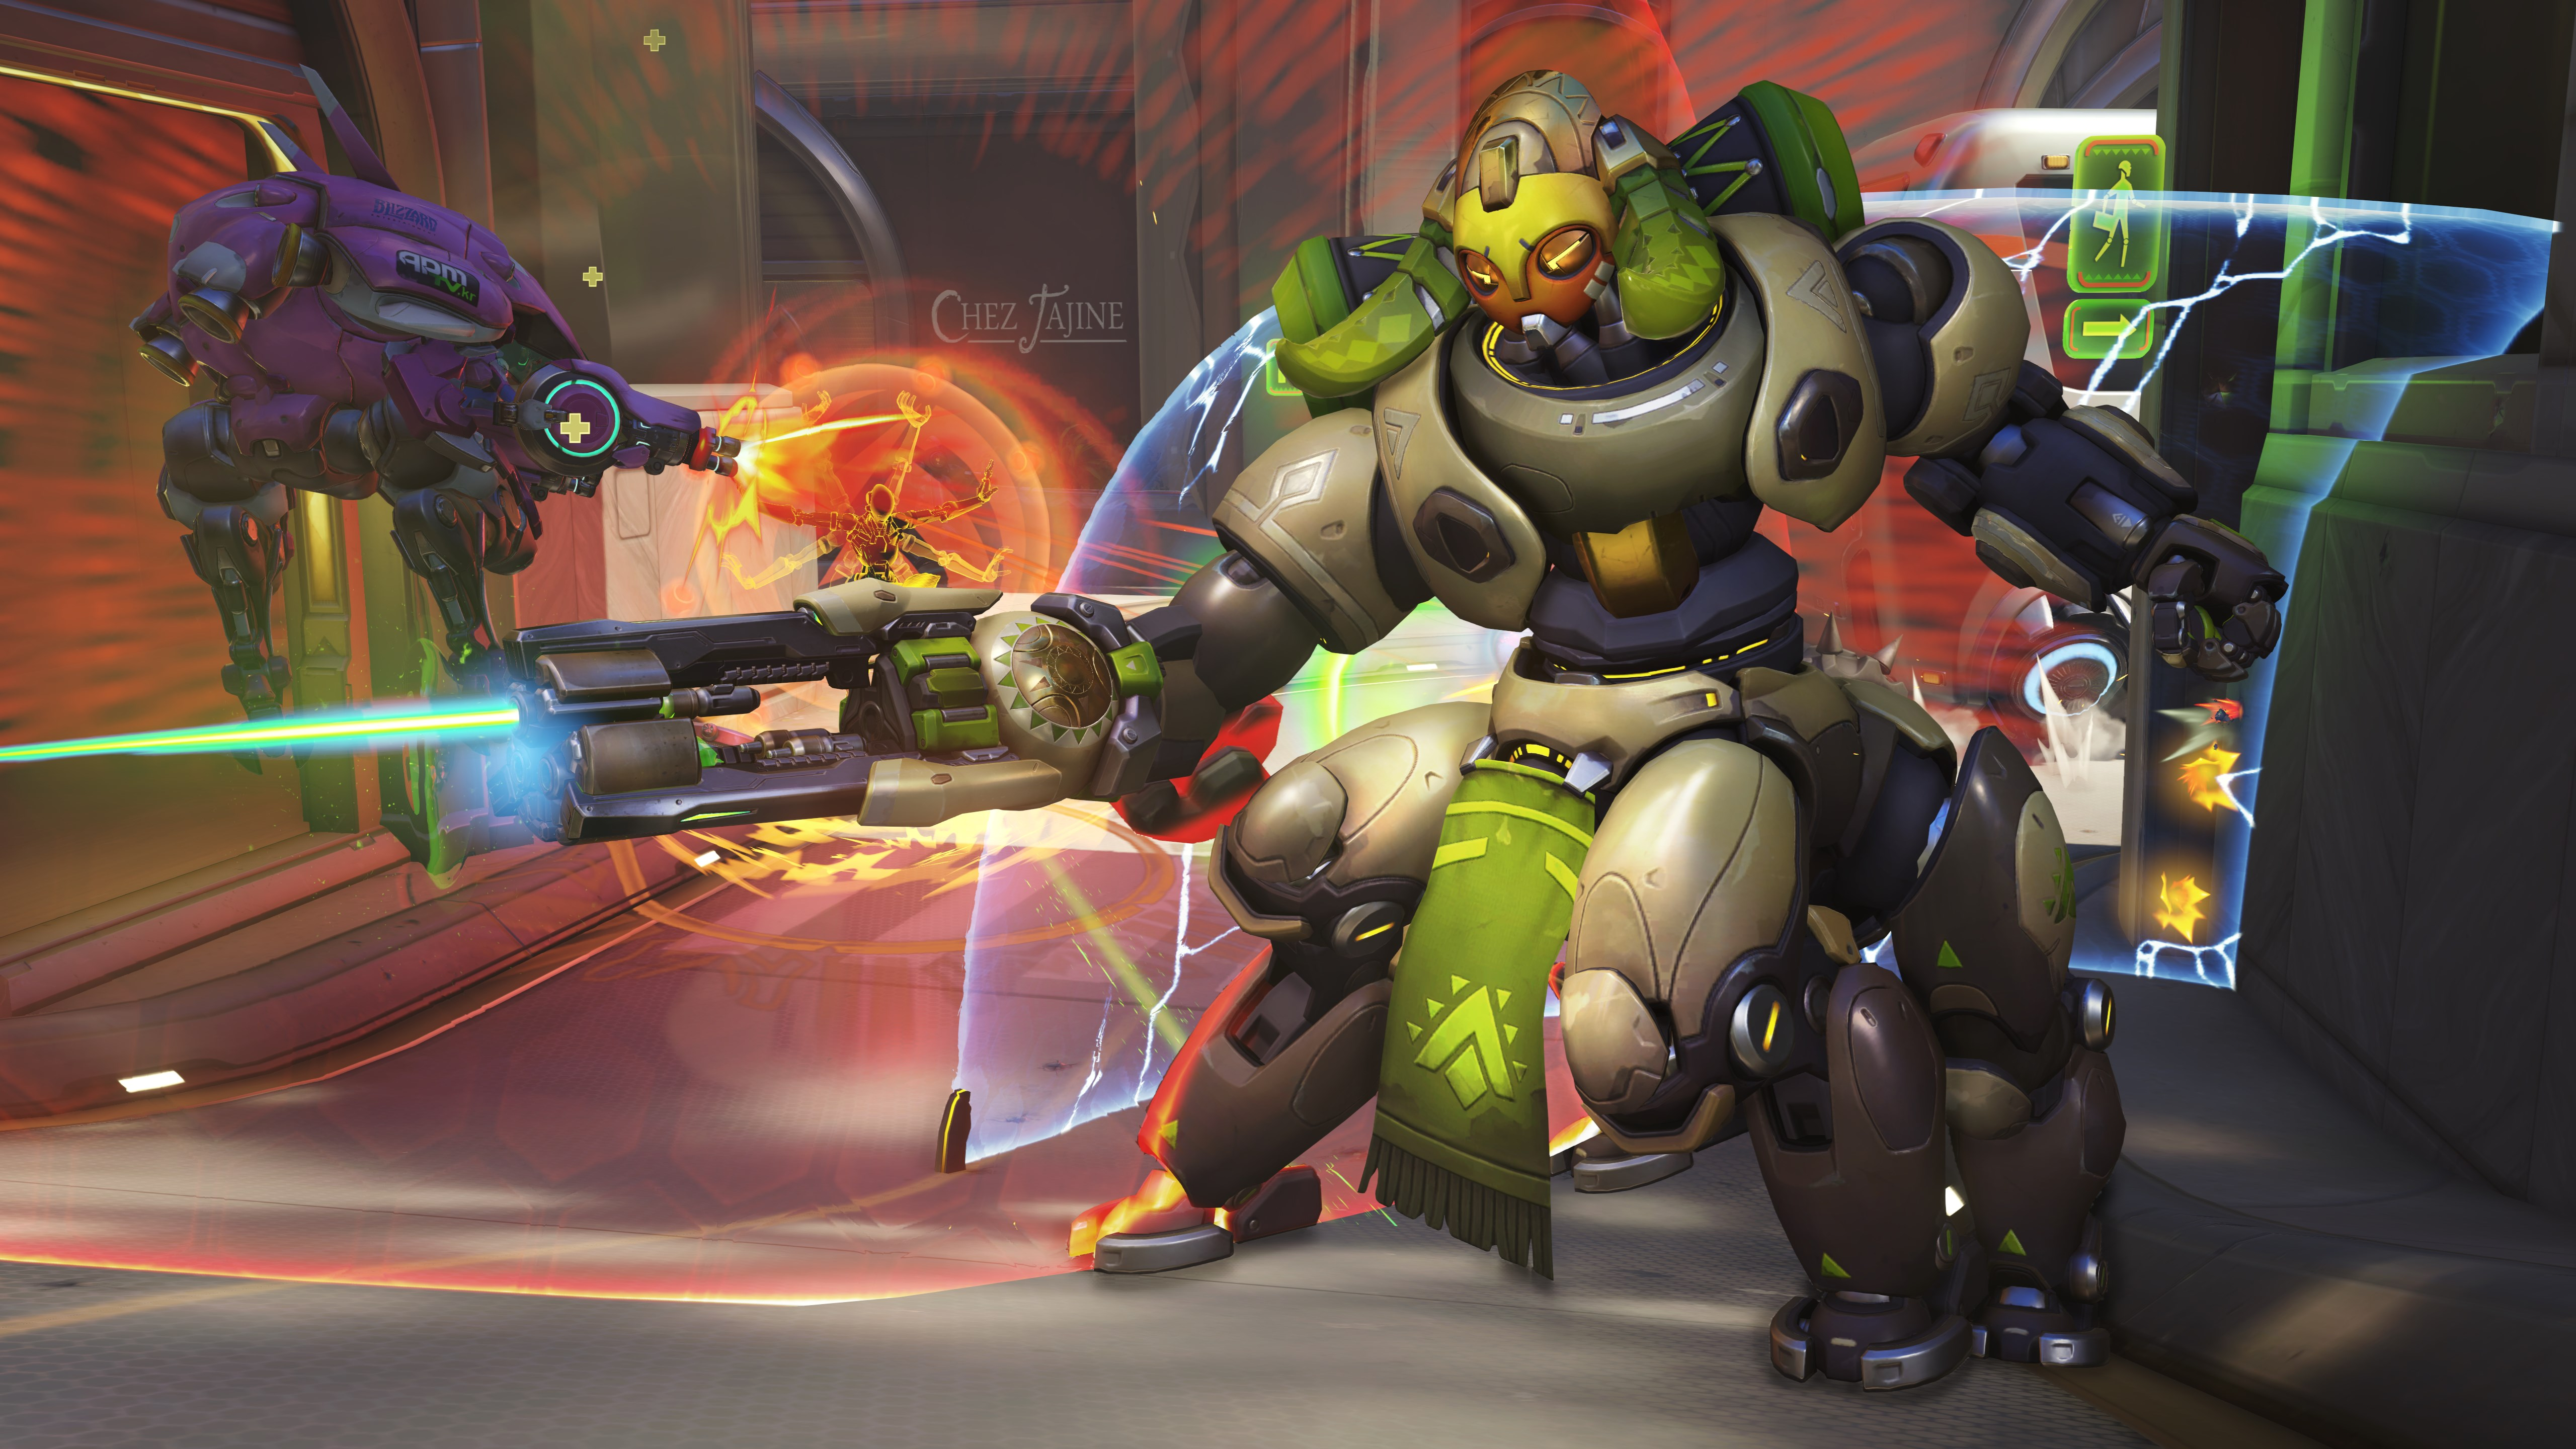 Overwatch's first official novel, The Hero of Numbani, to release on June 2